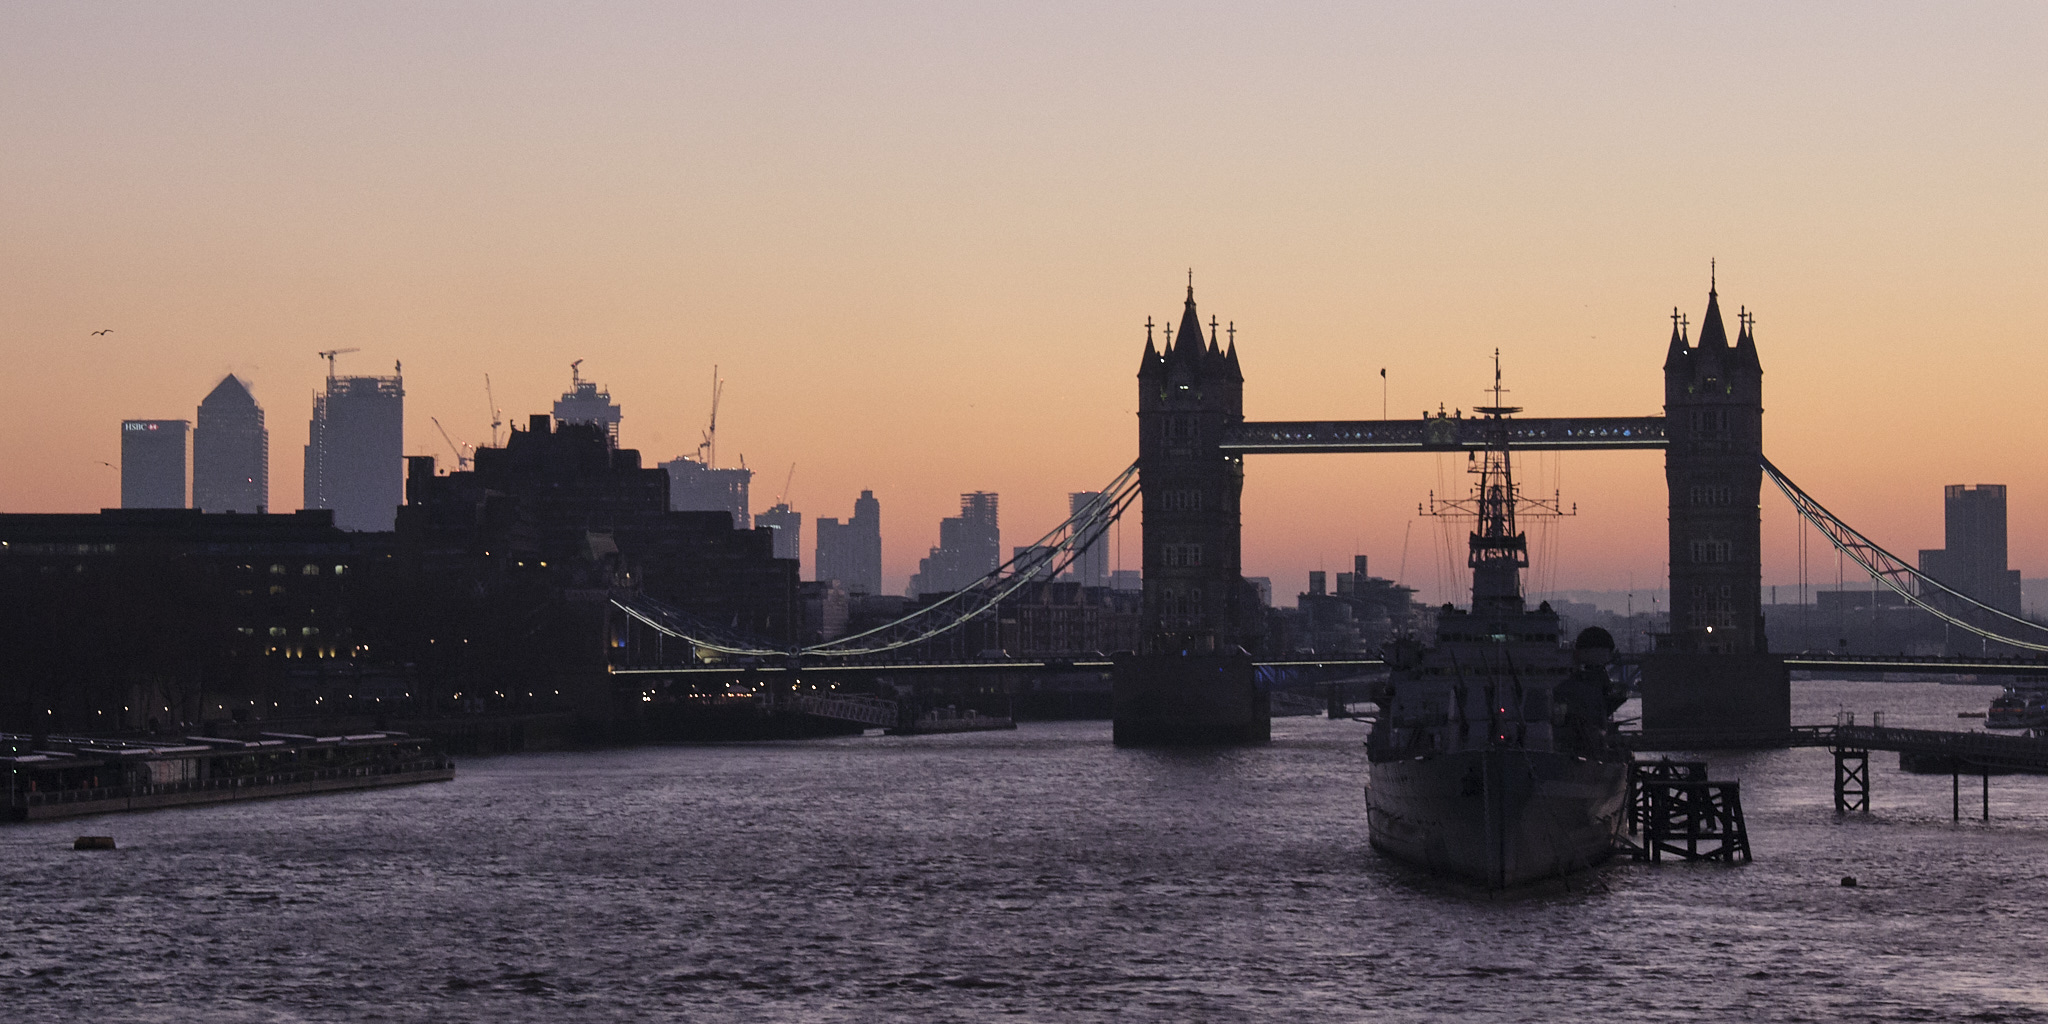 Fuji X-T3 16-55mm @55mm Dawn over Tower Bridge on the River Thames